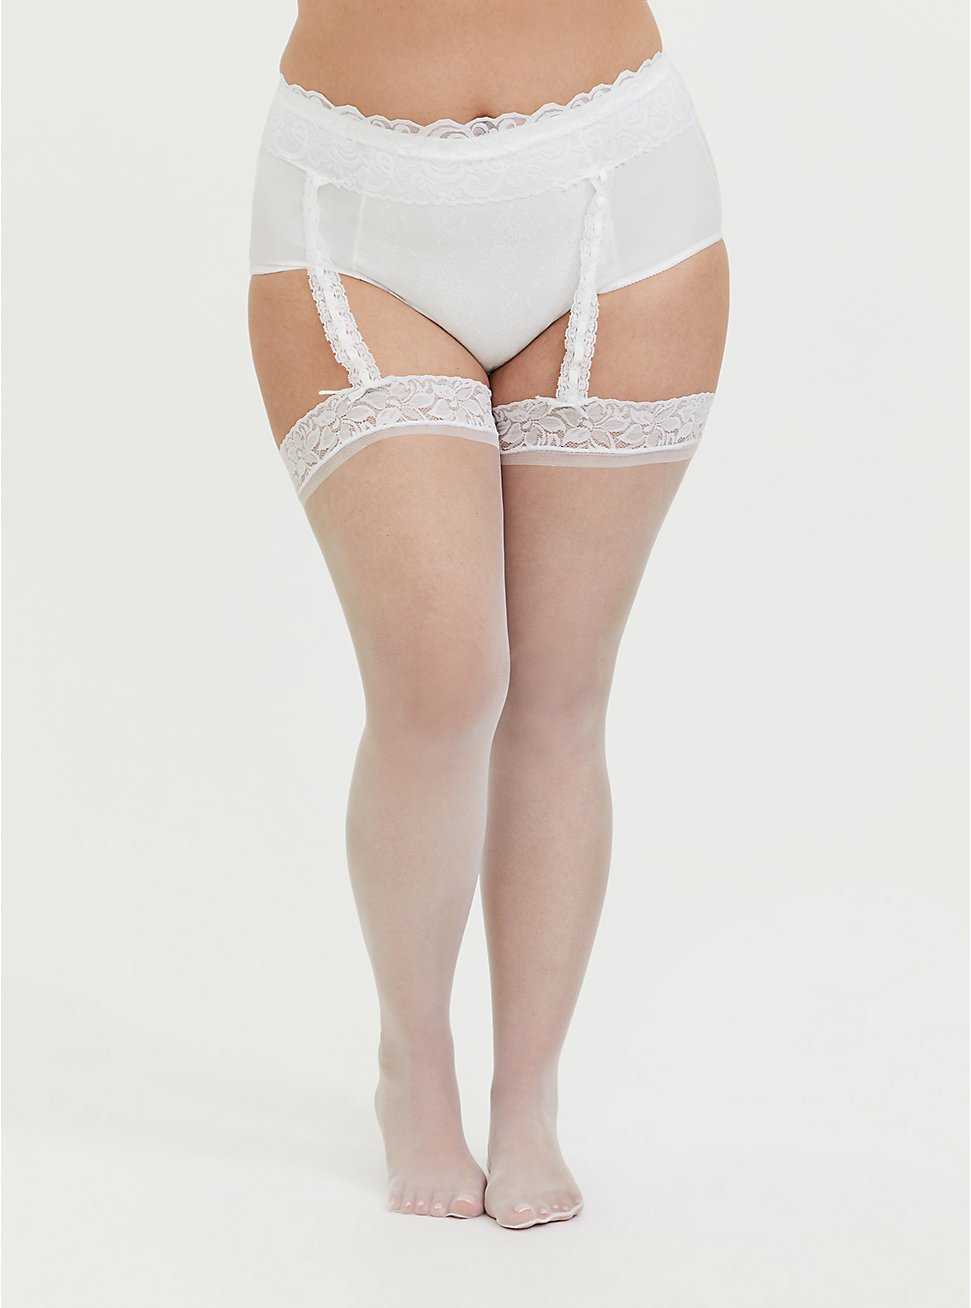 White Lace Faux Garter Bridal Tights, WHITE, hi-res